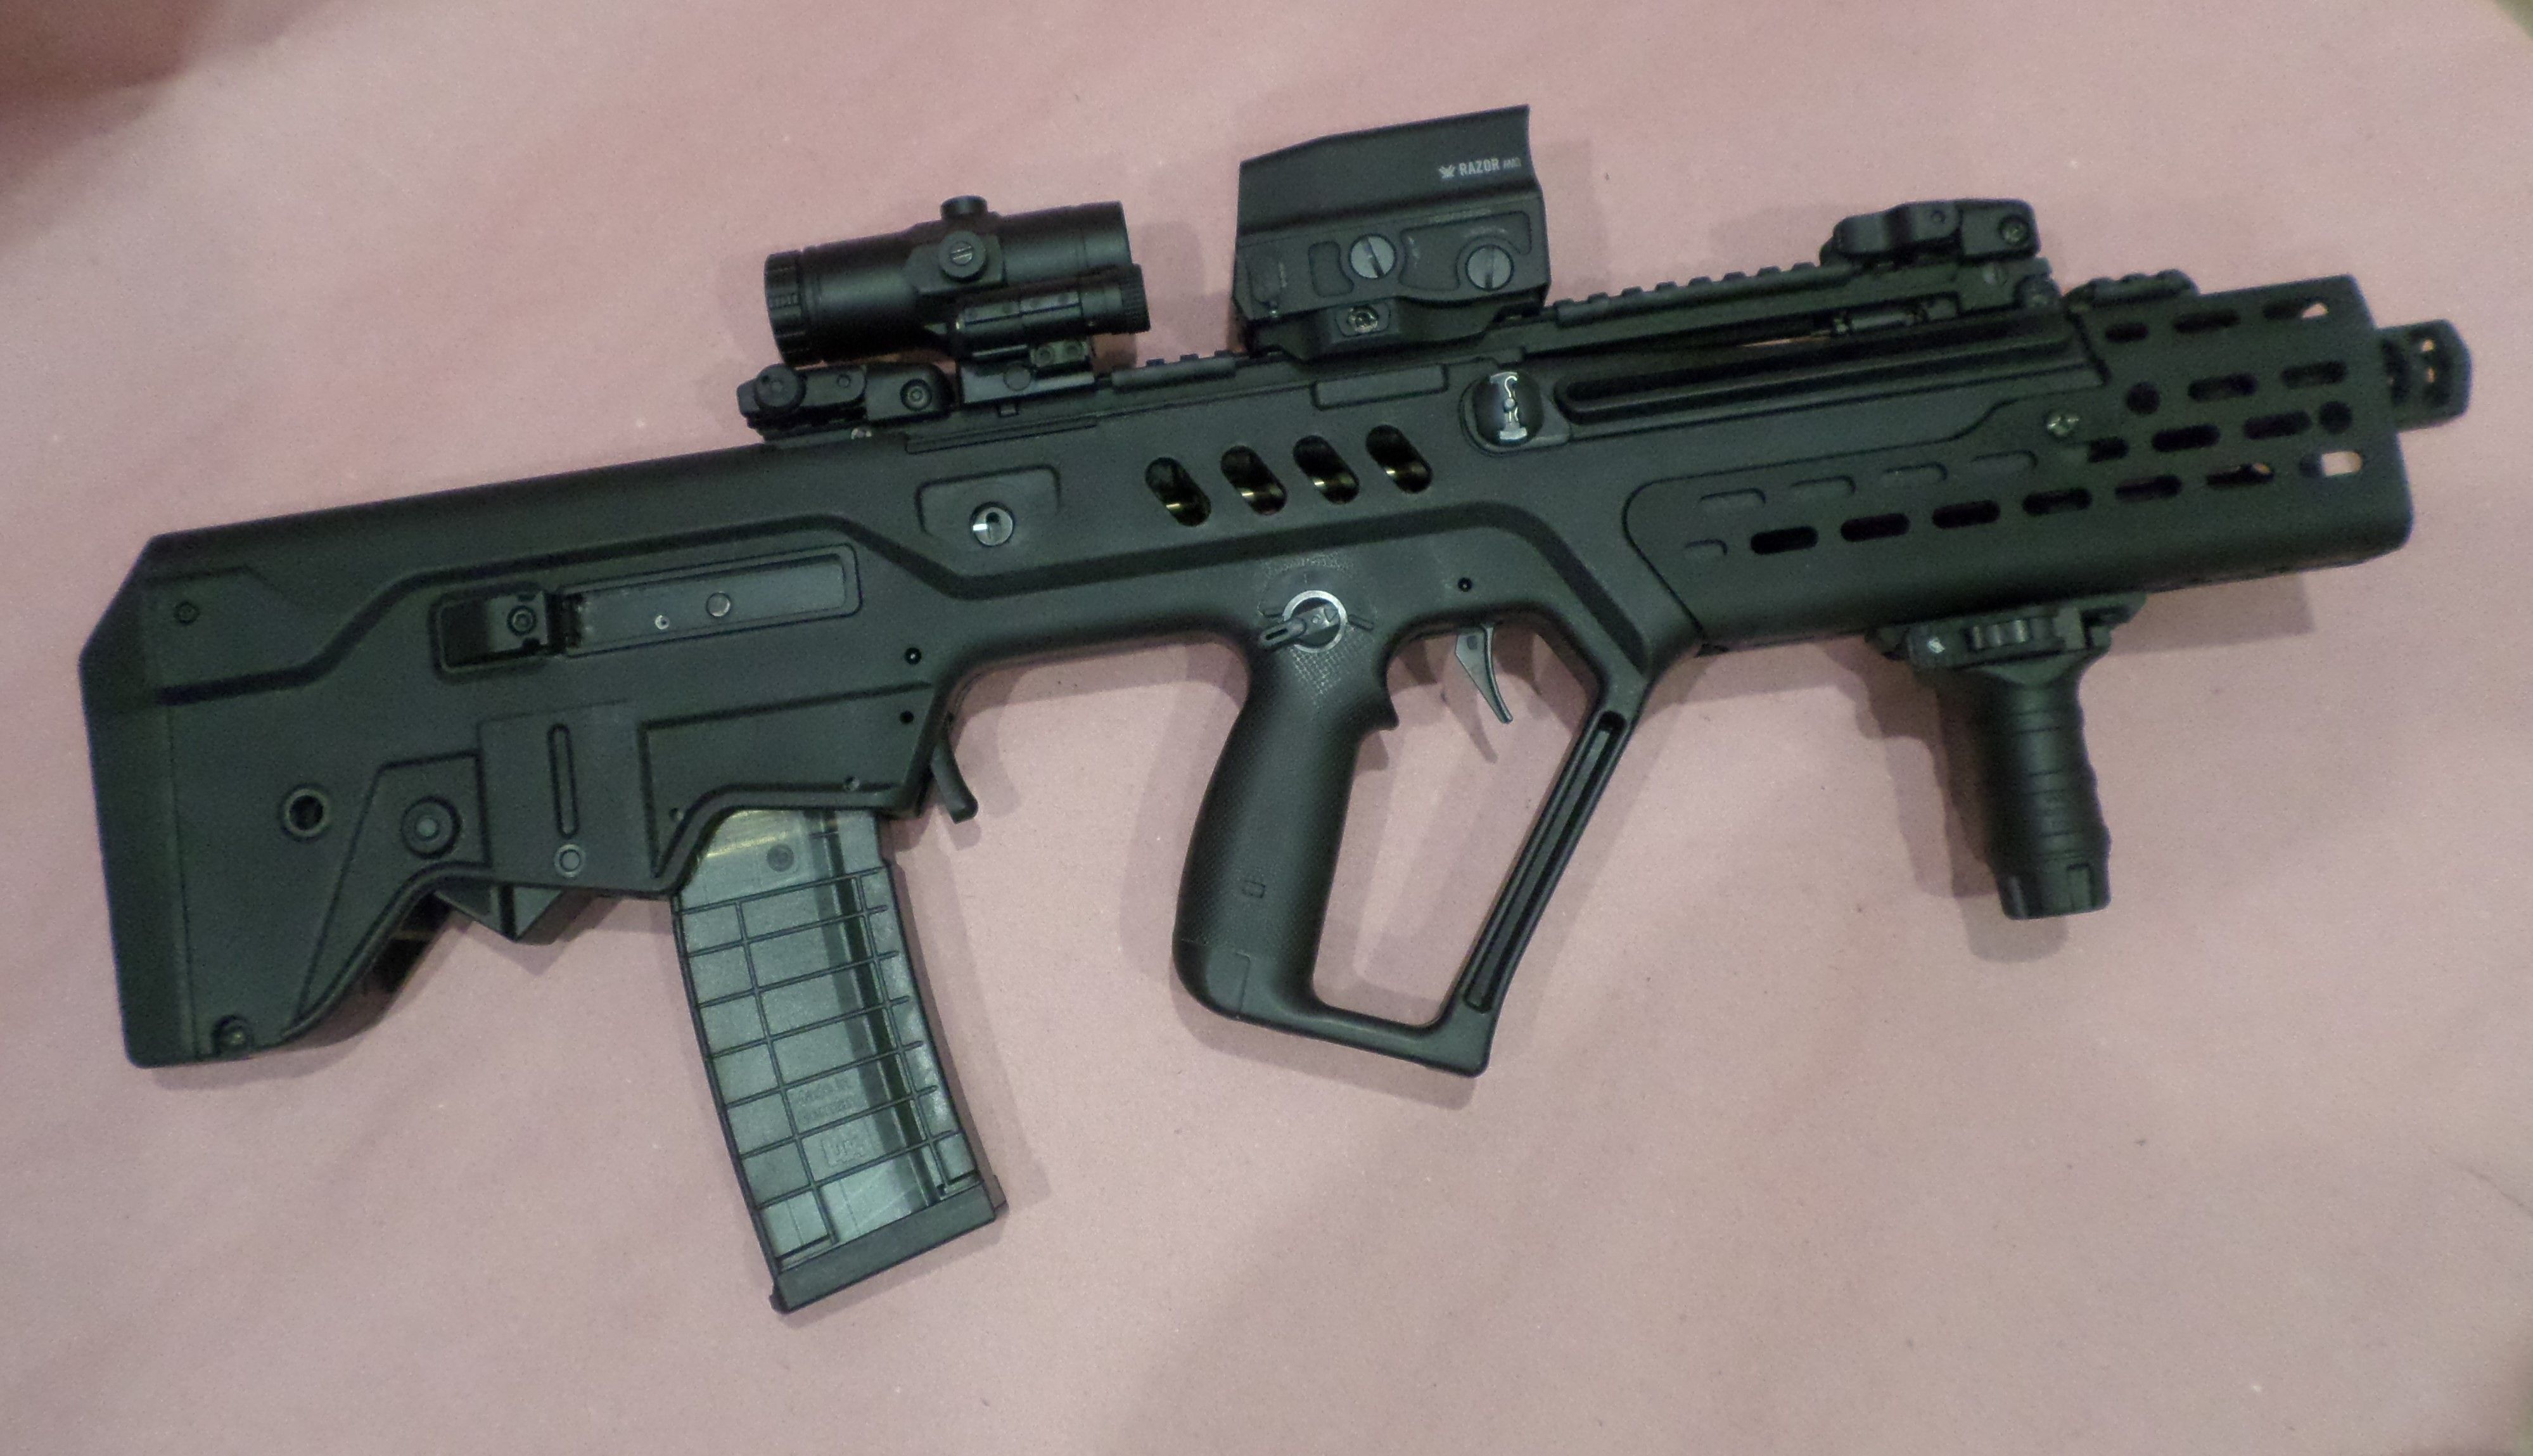 Space Force In 2020 Thermal Imaging Midland Radio Weapon Technology